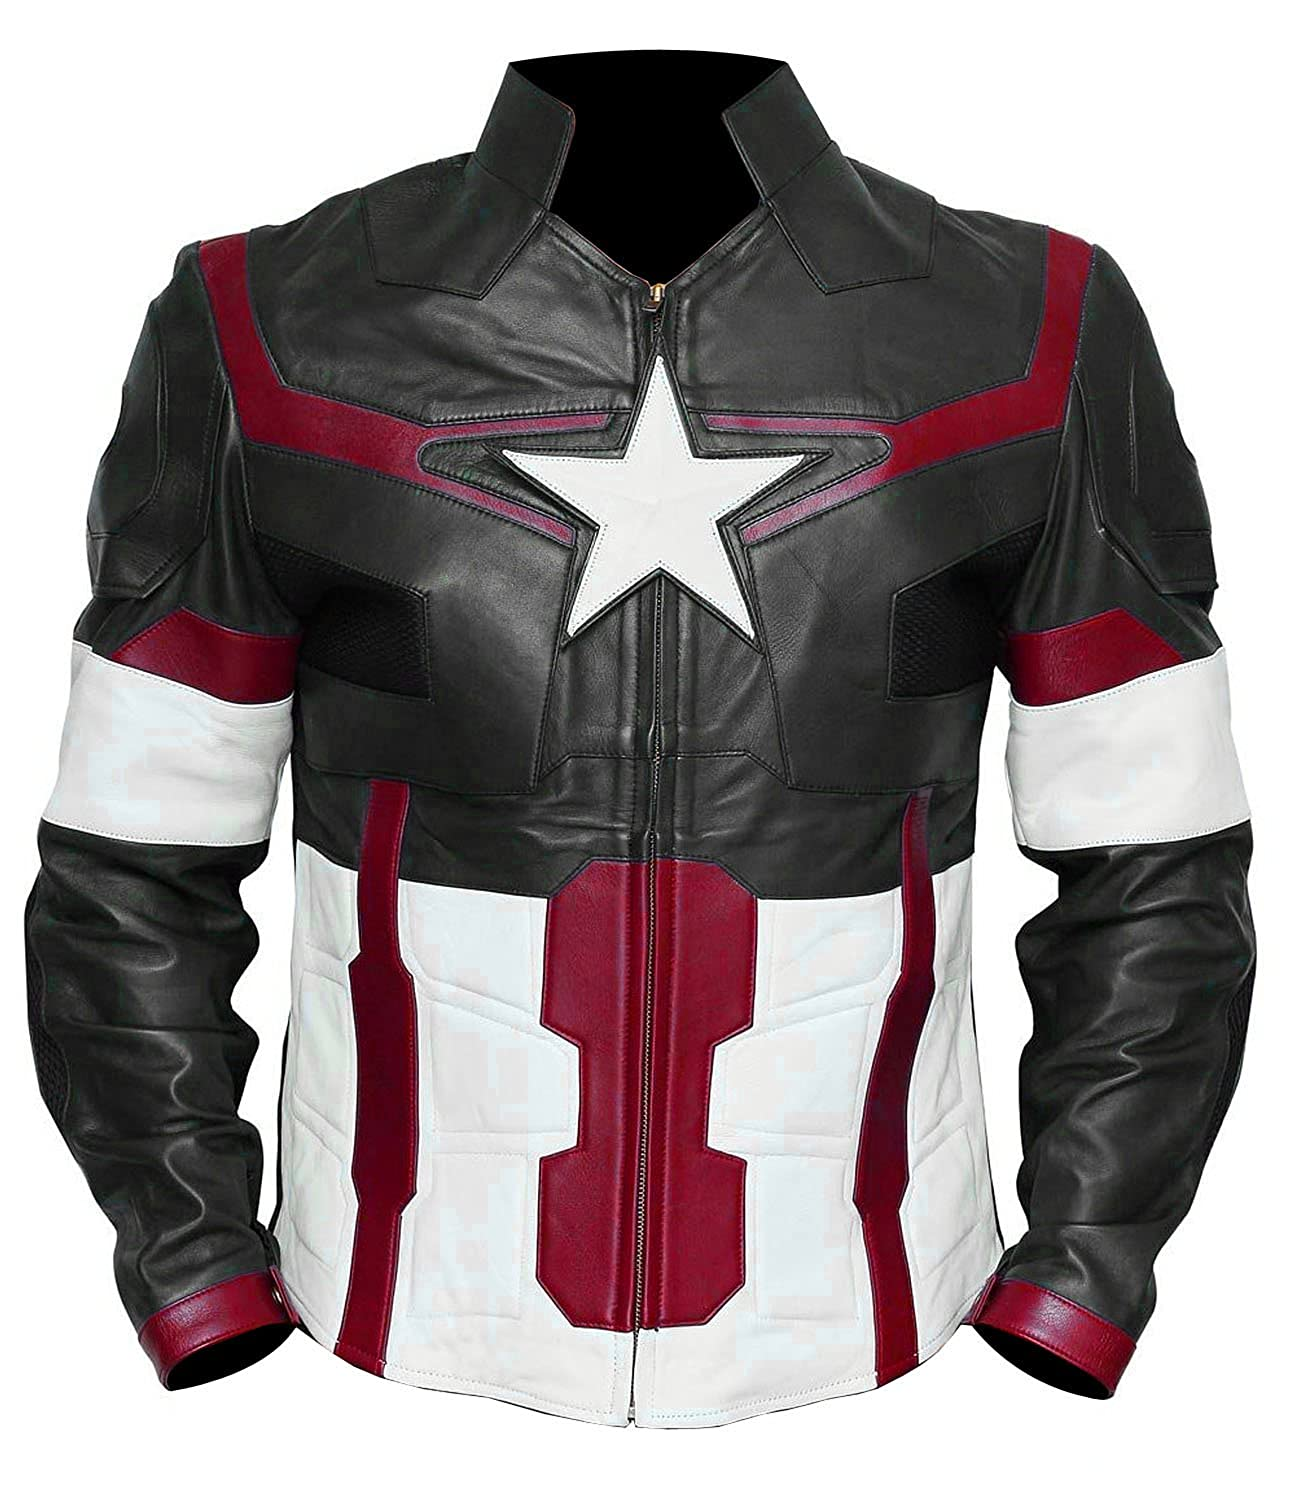 Men's Avengers: Age of Ultron Captain America Black Faux Leather Jacket - DeluxeAdultCostumes.com